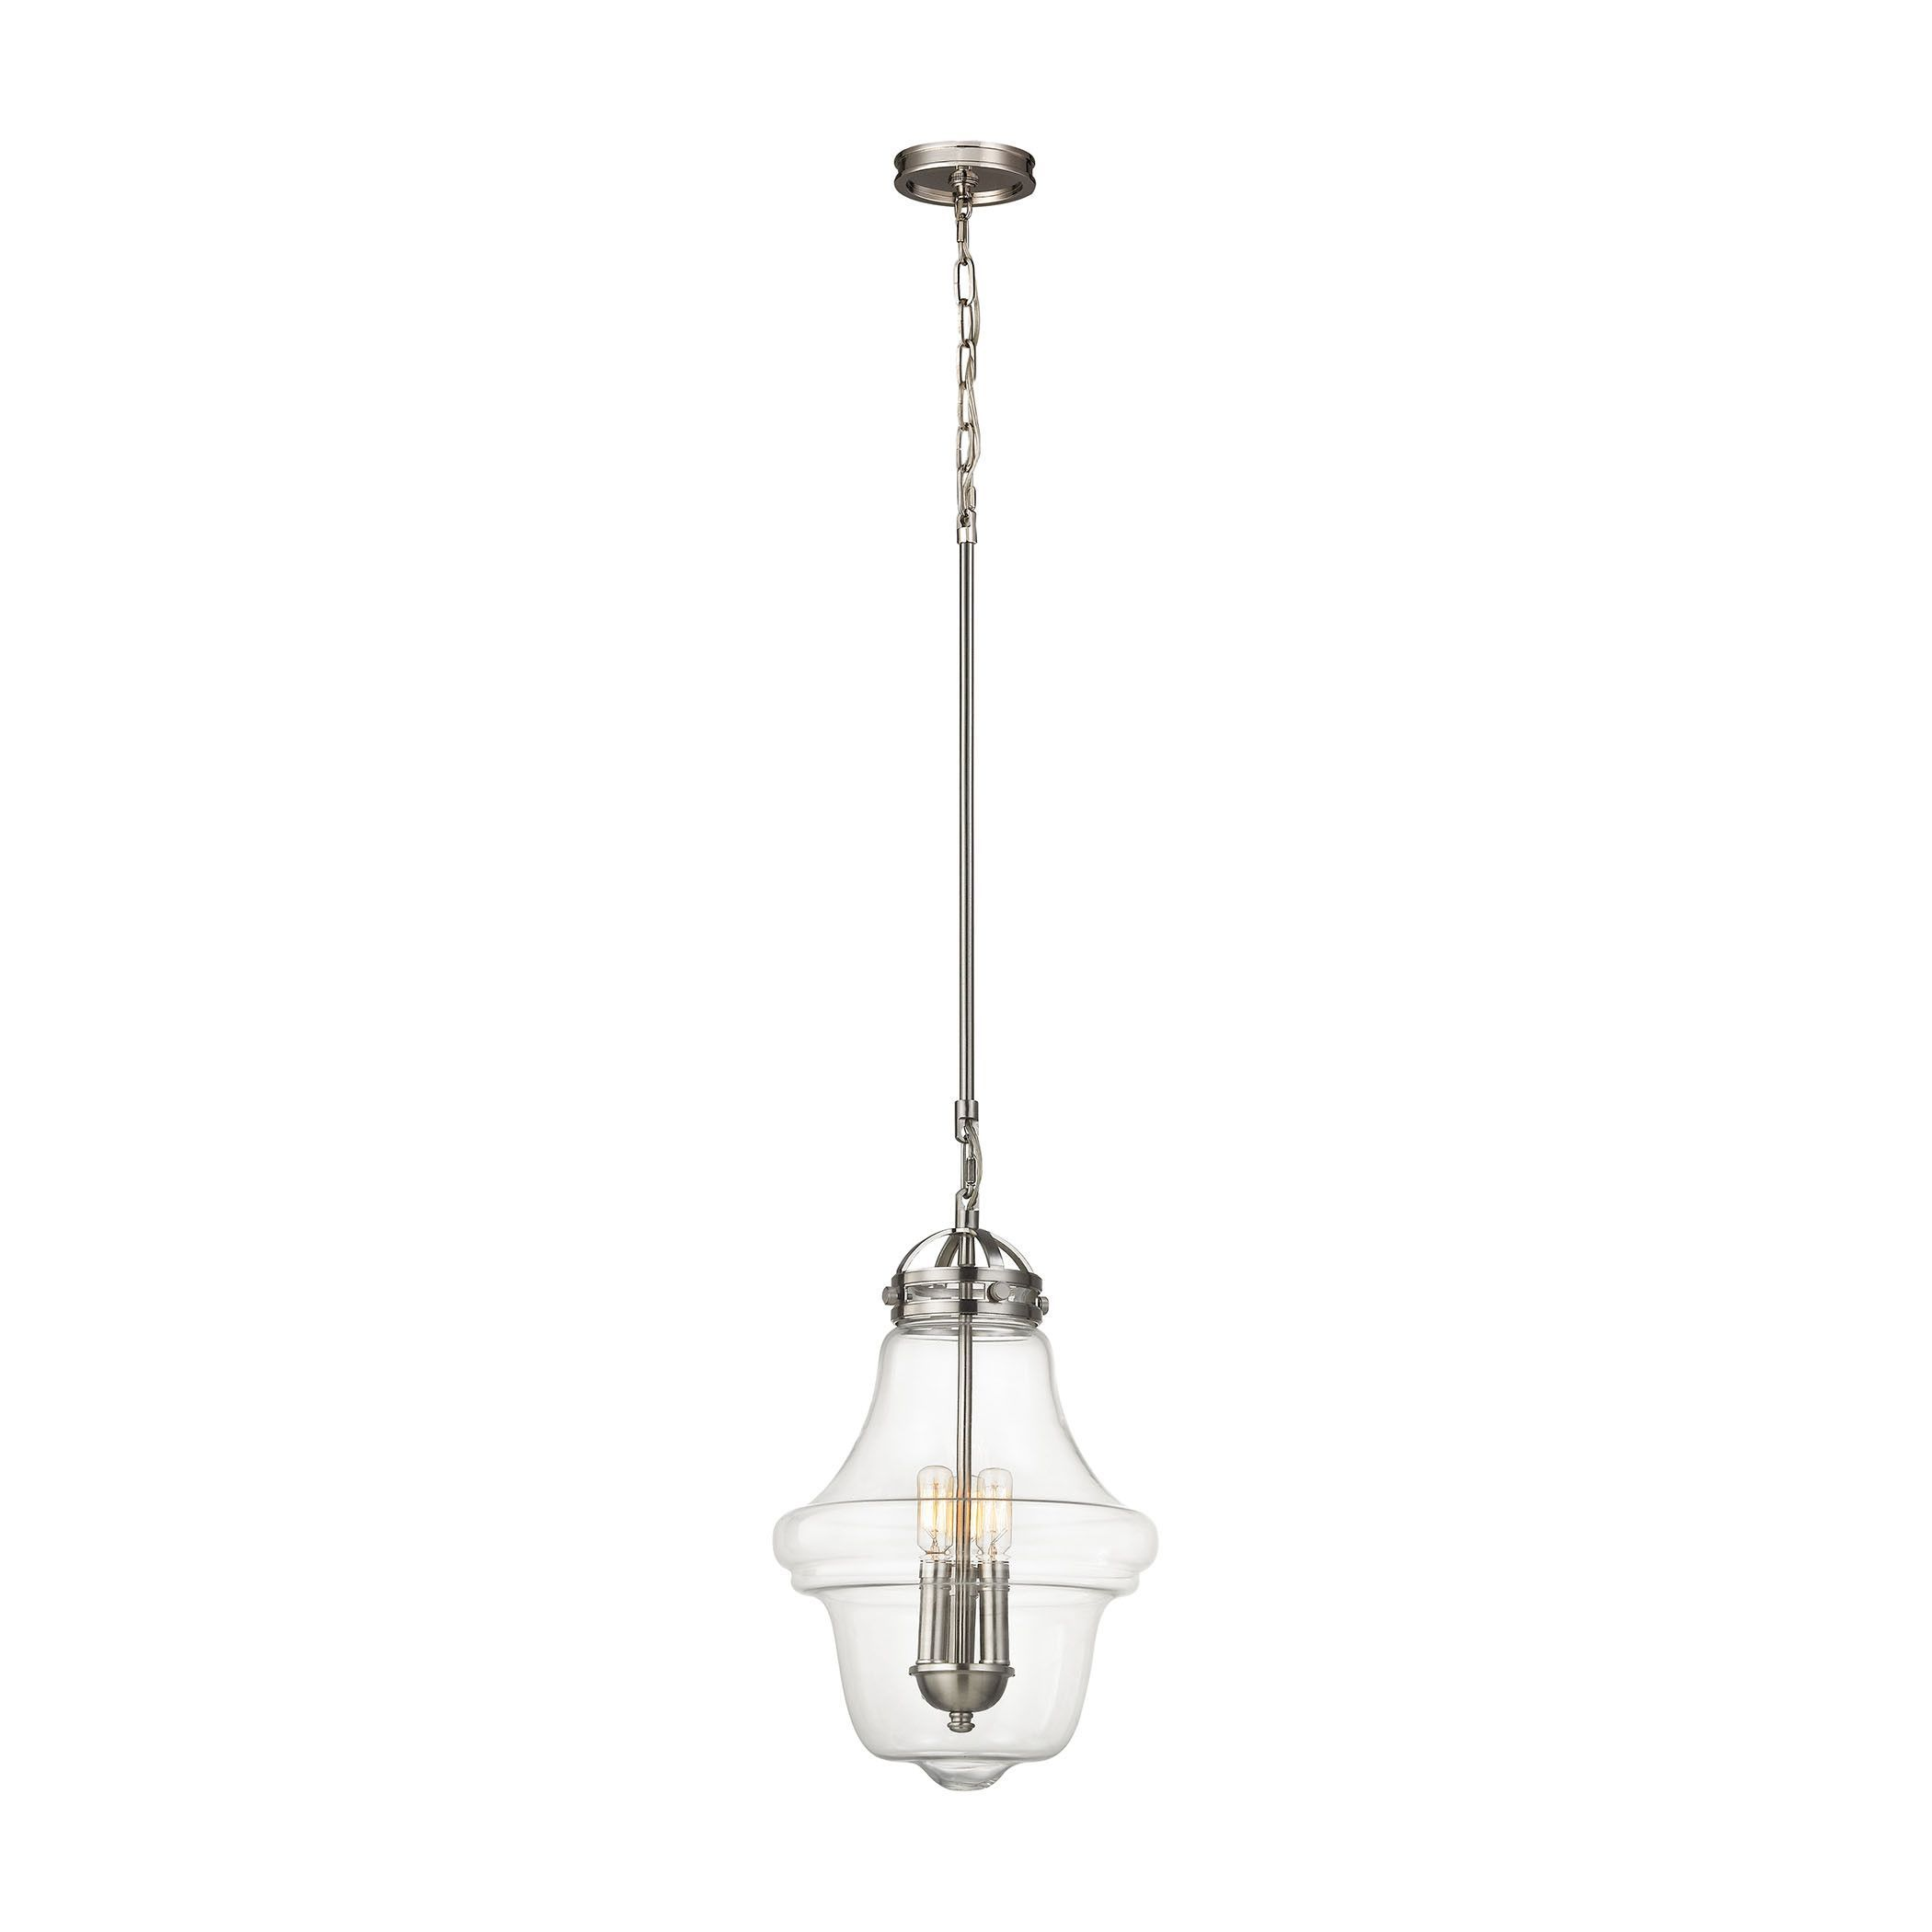 Gramercy light pendant in satin nickel products